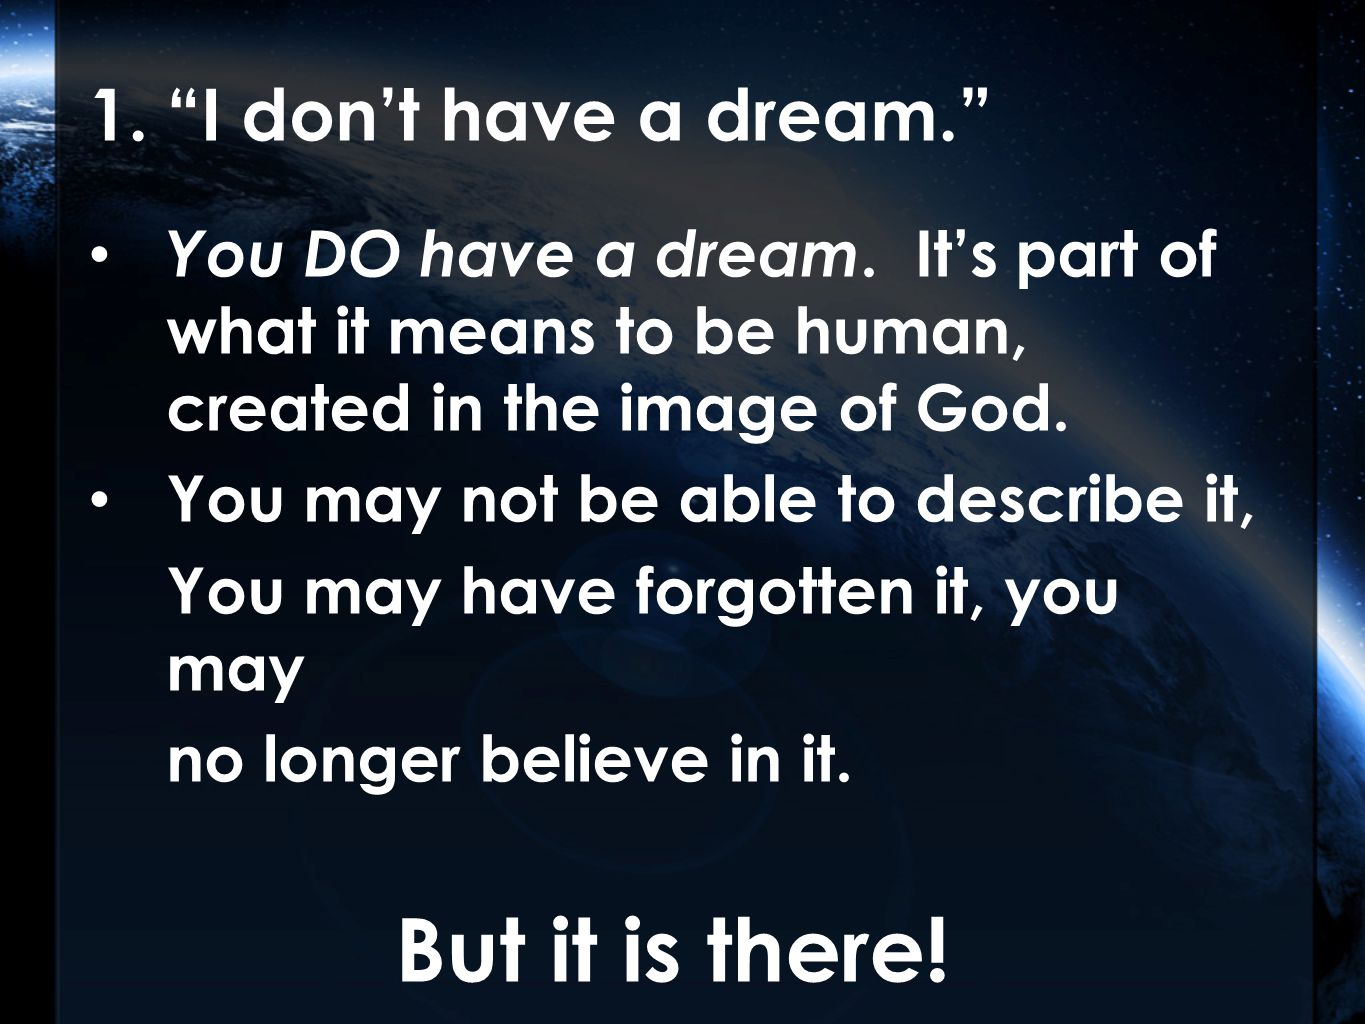 1. I don't have a dream. You DO have a dream.